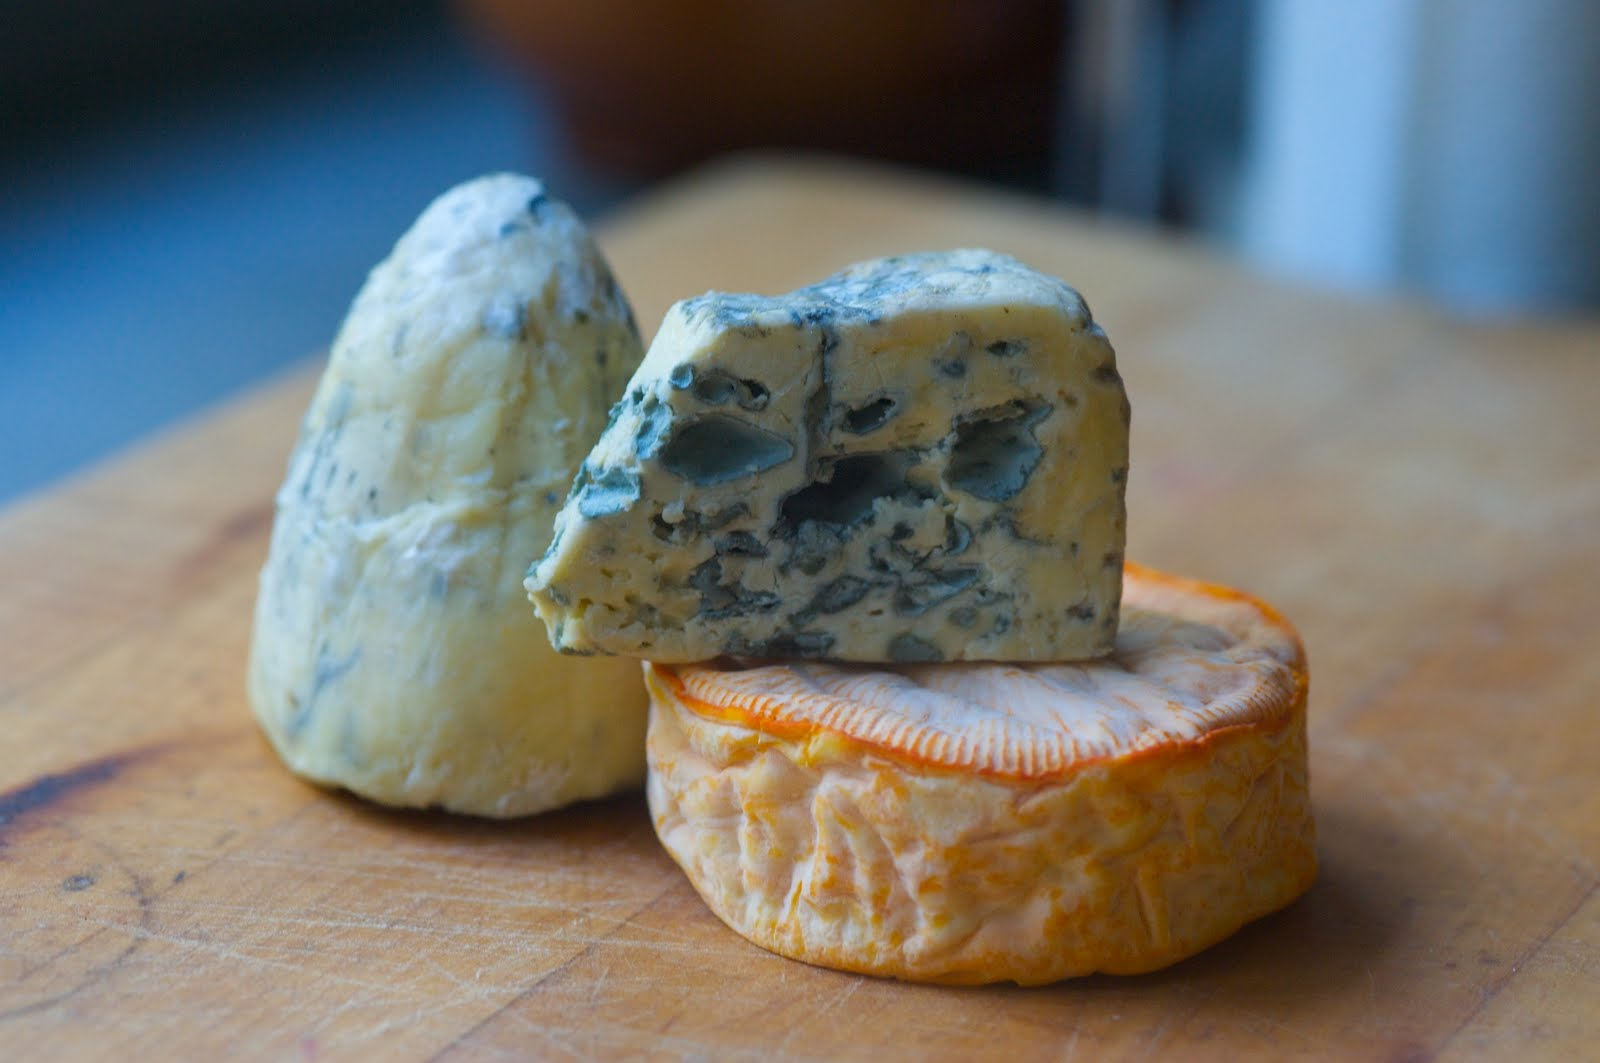 cheese cheeses stinky stinkiest adventures andrew thomas strathdon scary quiet corner smelly claire smoky